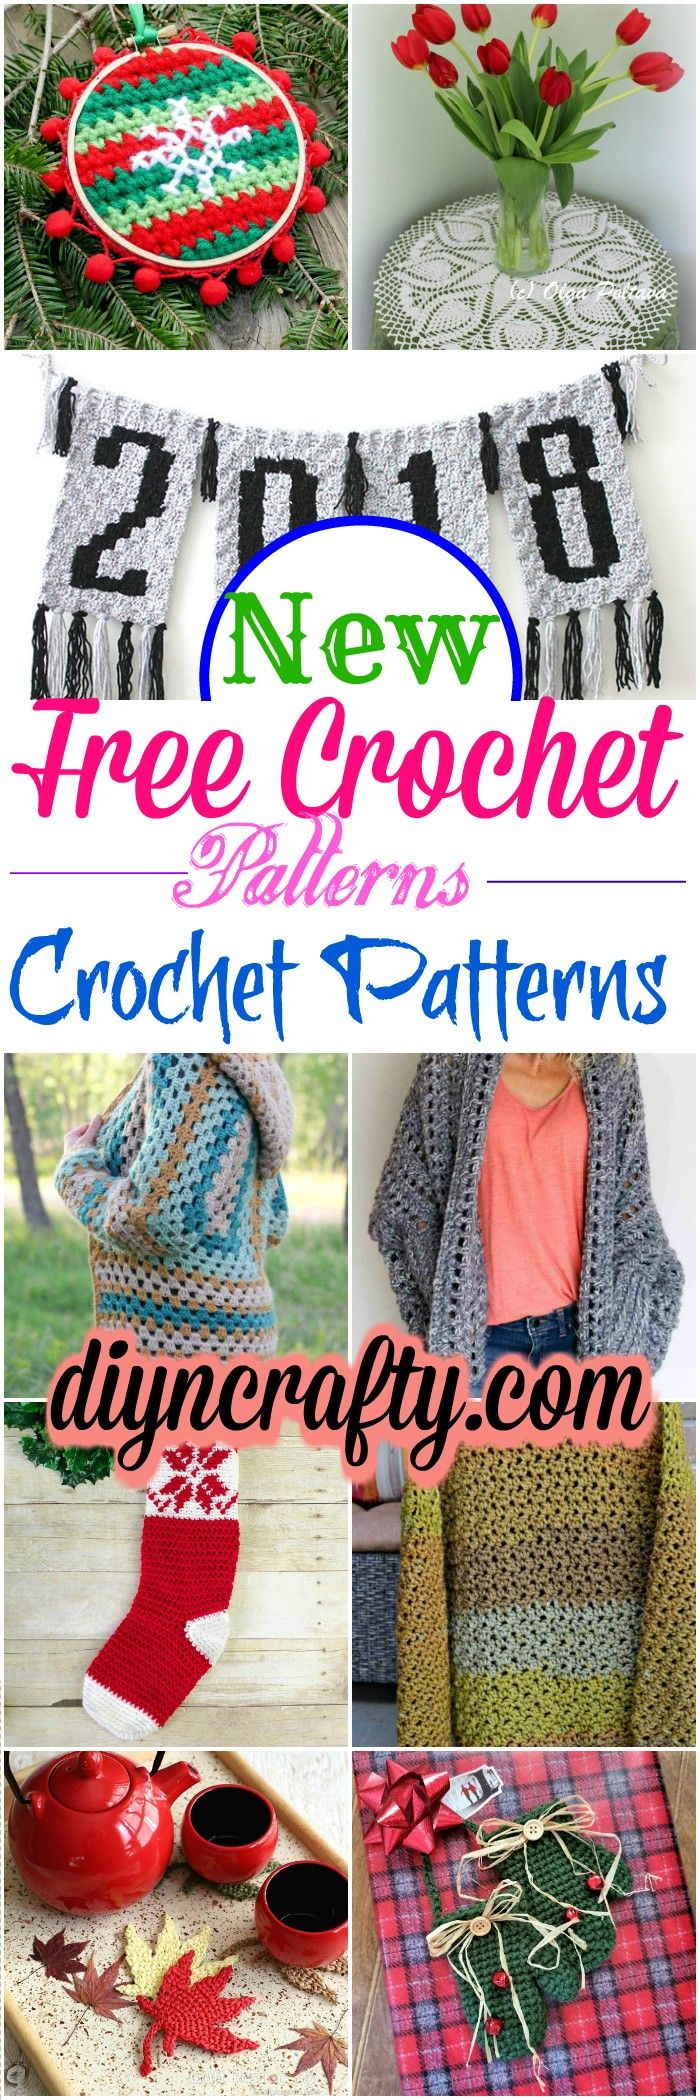 Here we have rounded up 15 new free #crochet #patterns that will really inspire you to make your new year more interesting and fun.